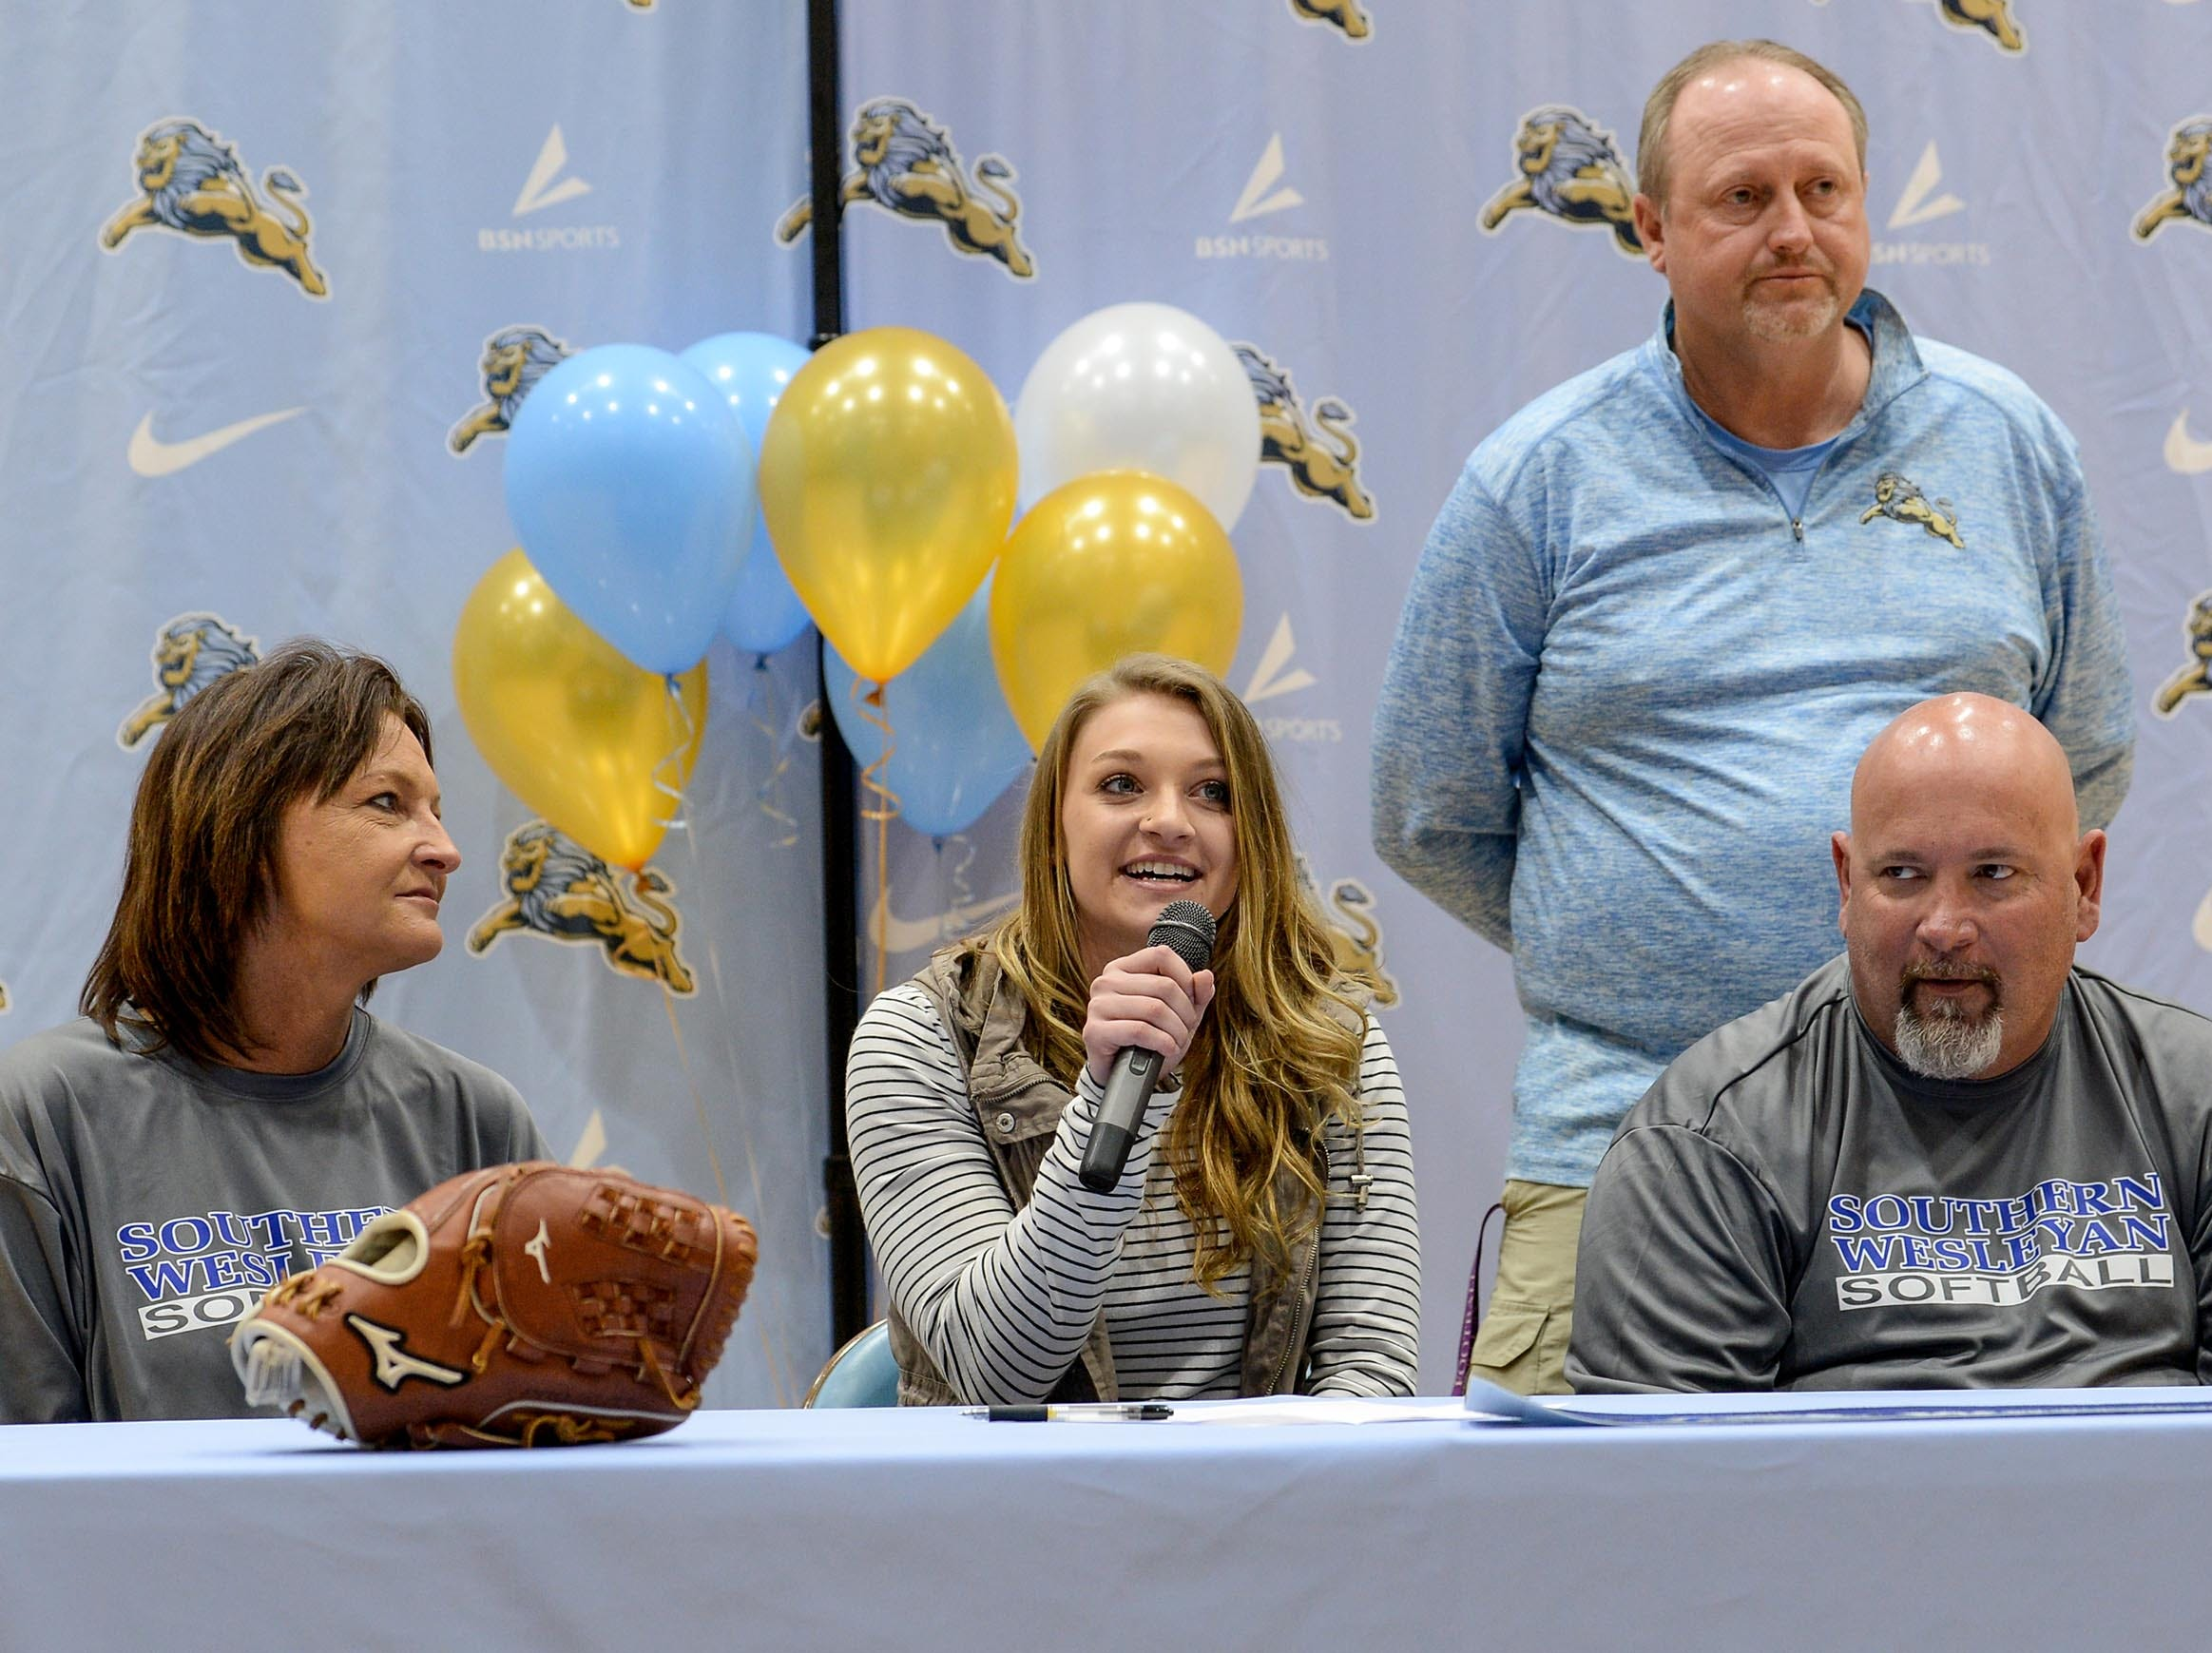 Southern Wesleyan University softball signee Makayla Sexton speaks near parents Kevin and Lydia Sexton and coach Andy Swords during National Letter of Intent signing day at D.W. Daniel High School in Central Wednesday.